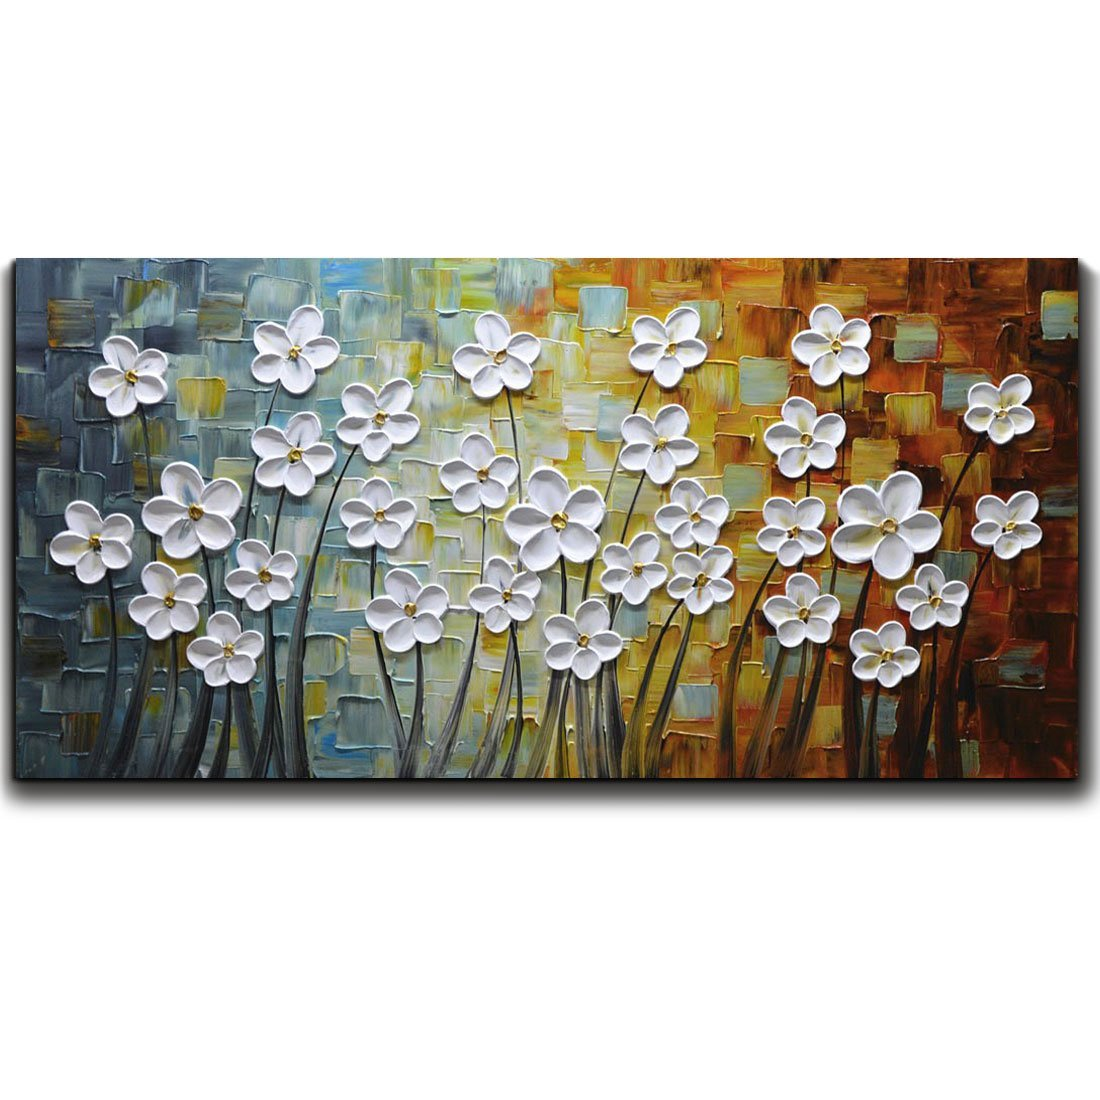 Aliexpress Buy Paintings White Flower Oil Painting 3d Hand